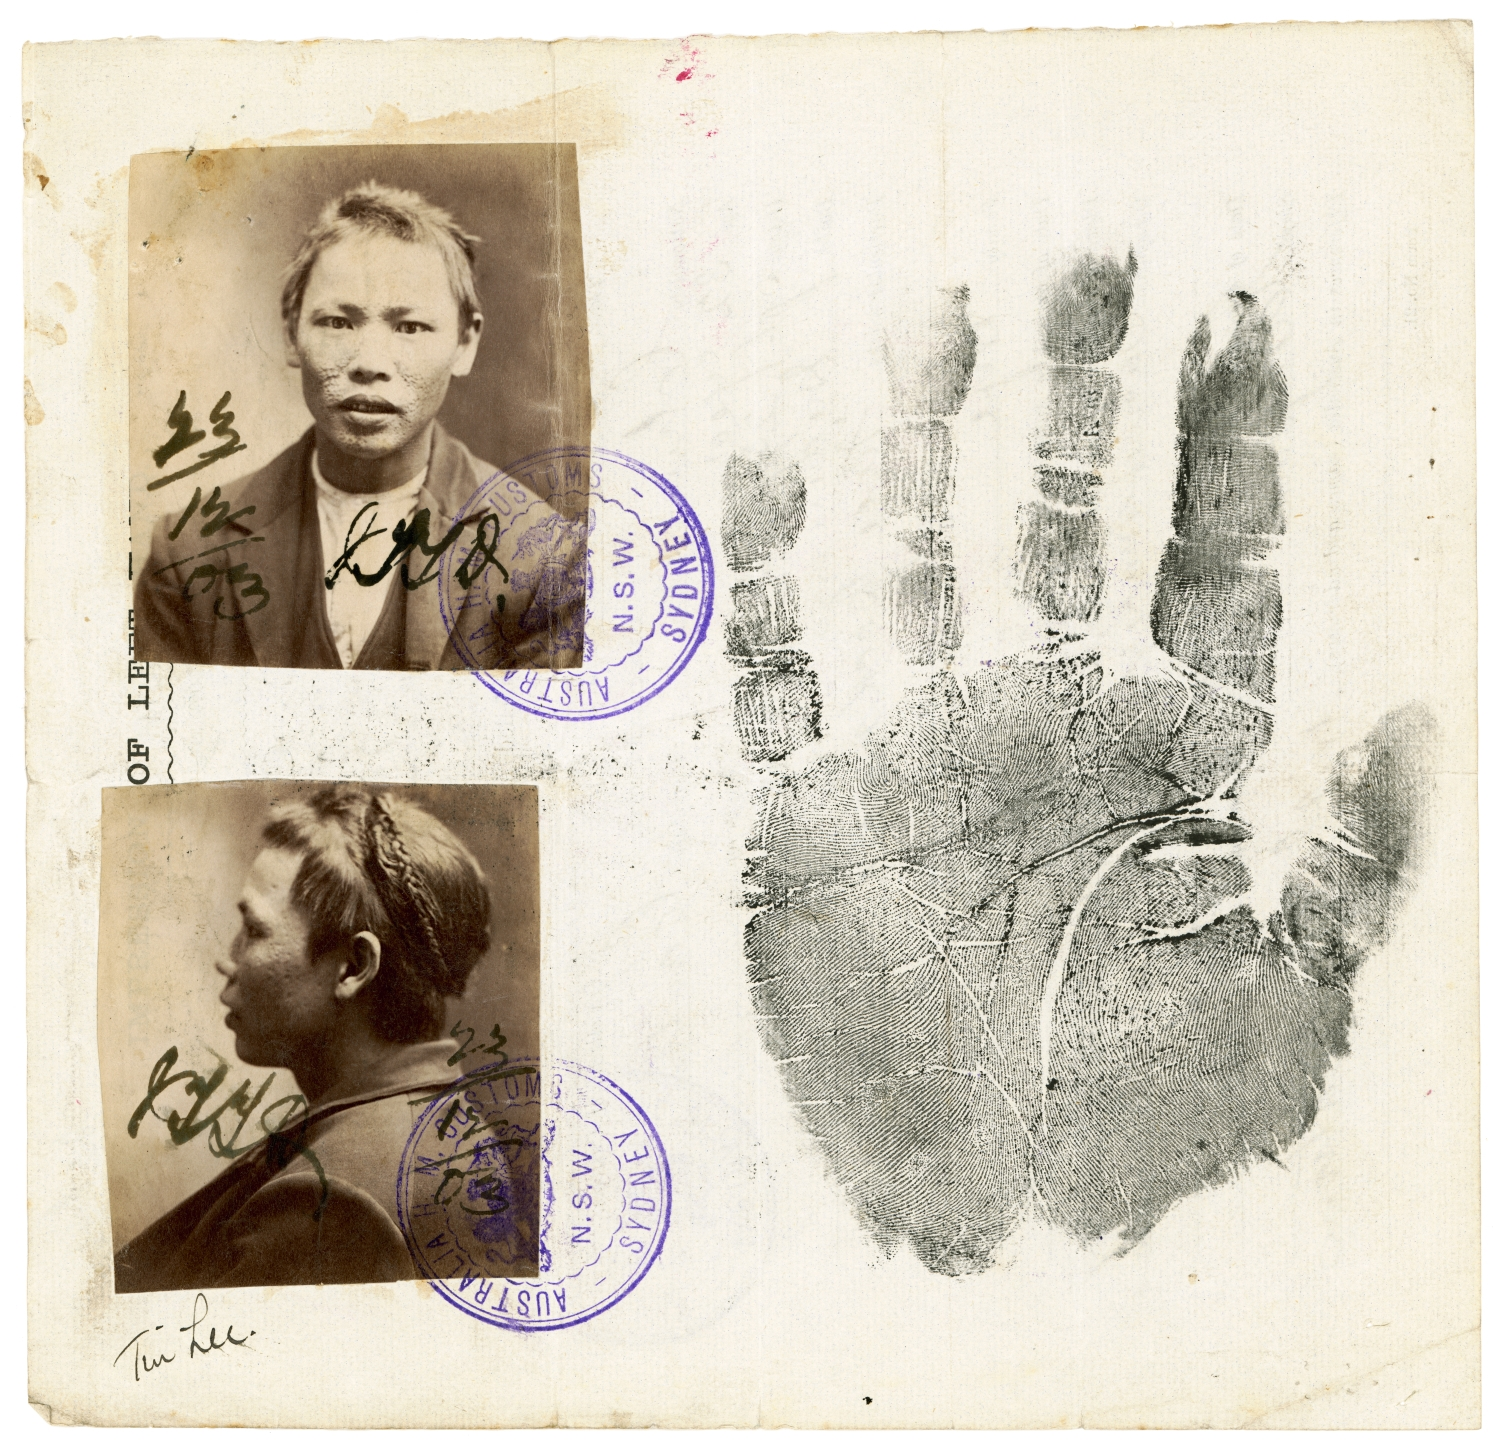 Certificate incorporating two photographs and left hand impression